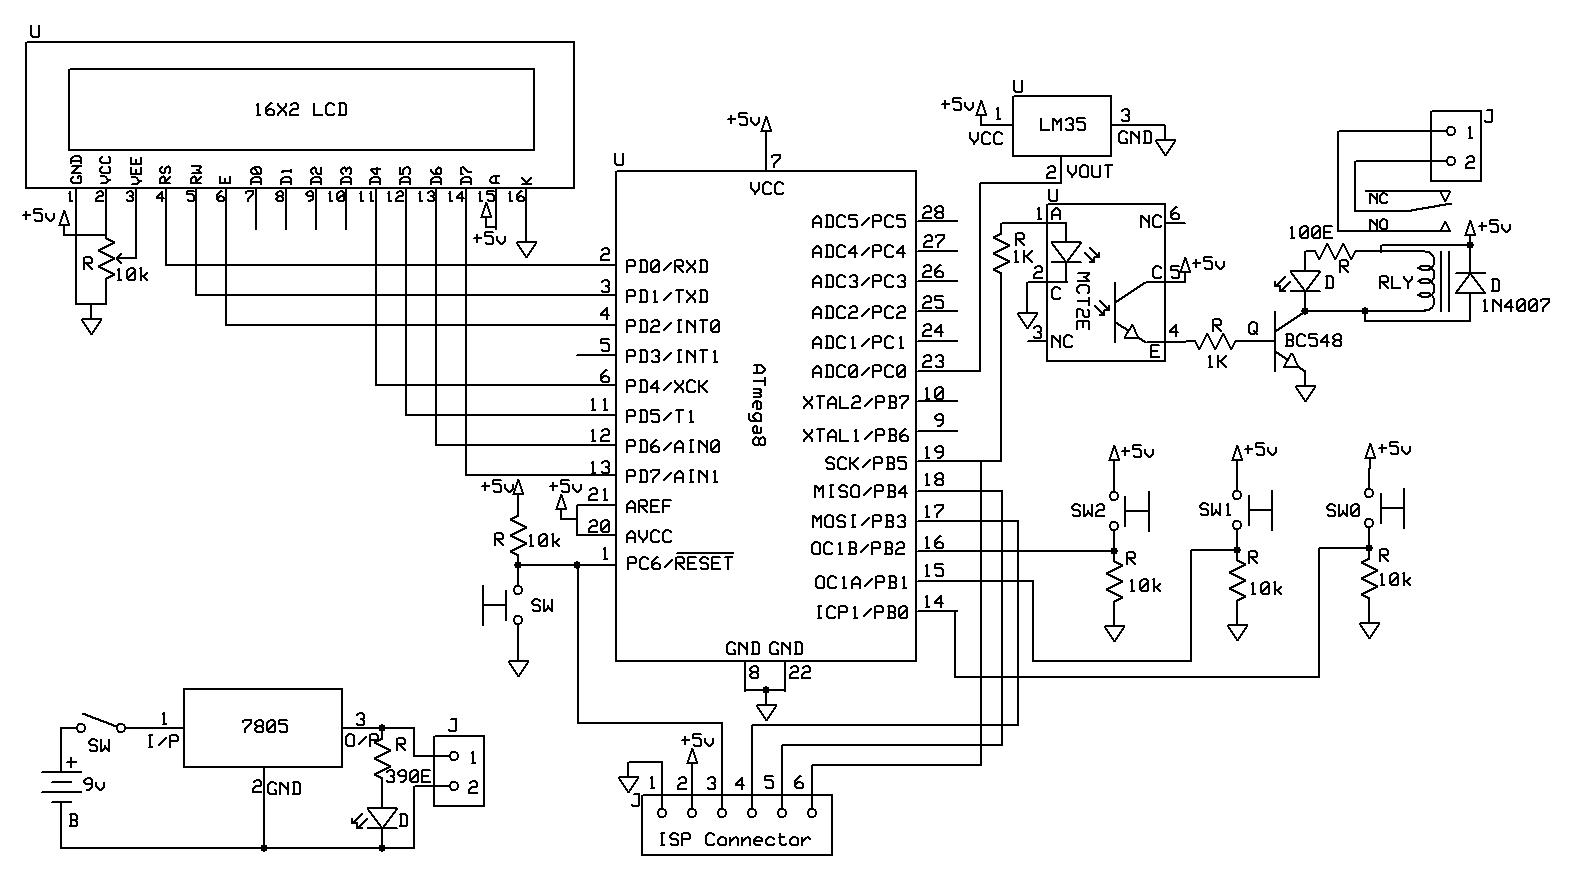 Spdt Relay Wiring Diagram As Well Cooling Fan Relay Wiring Diagram